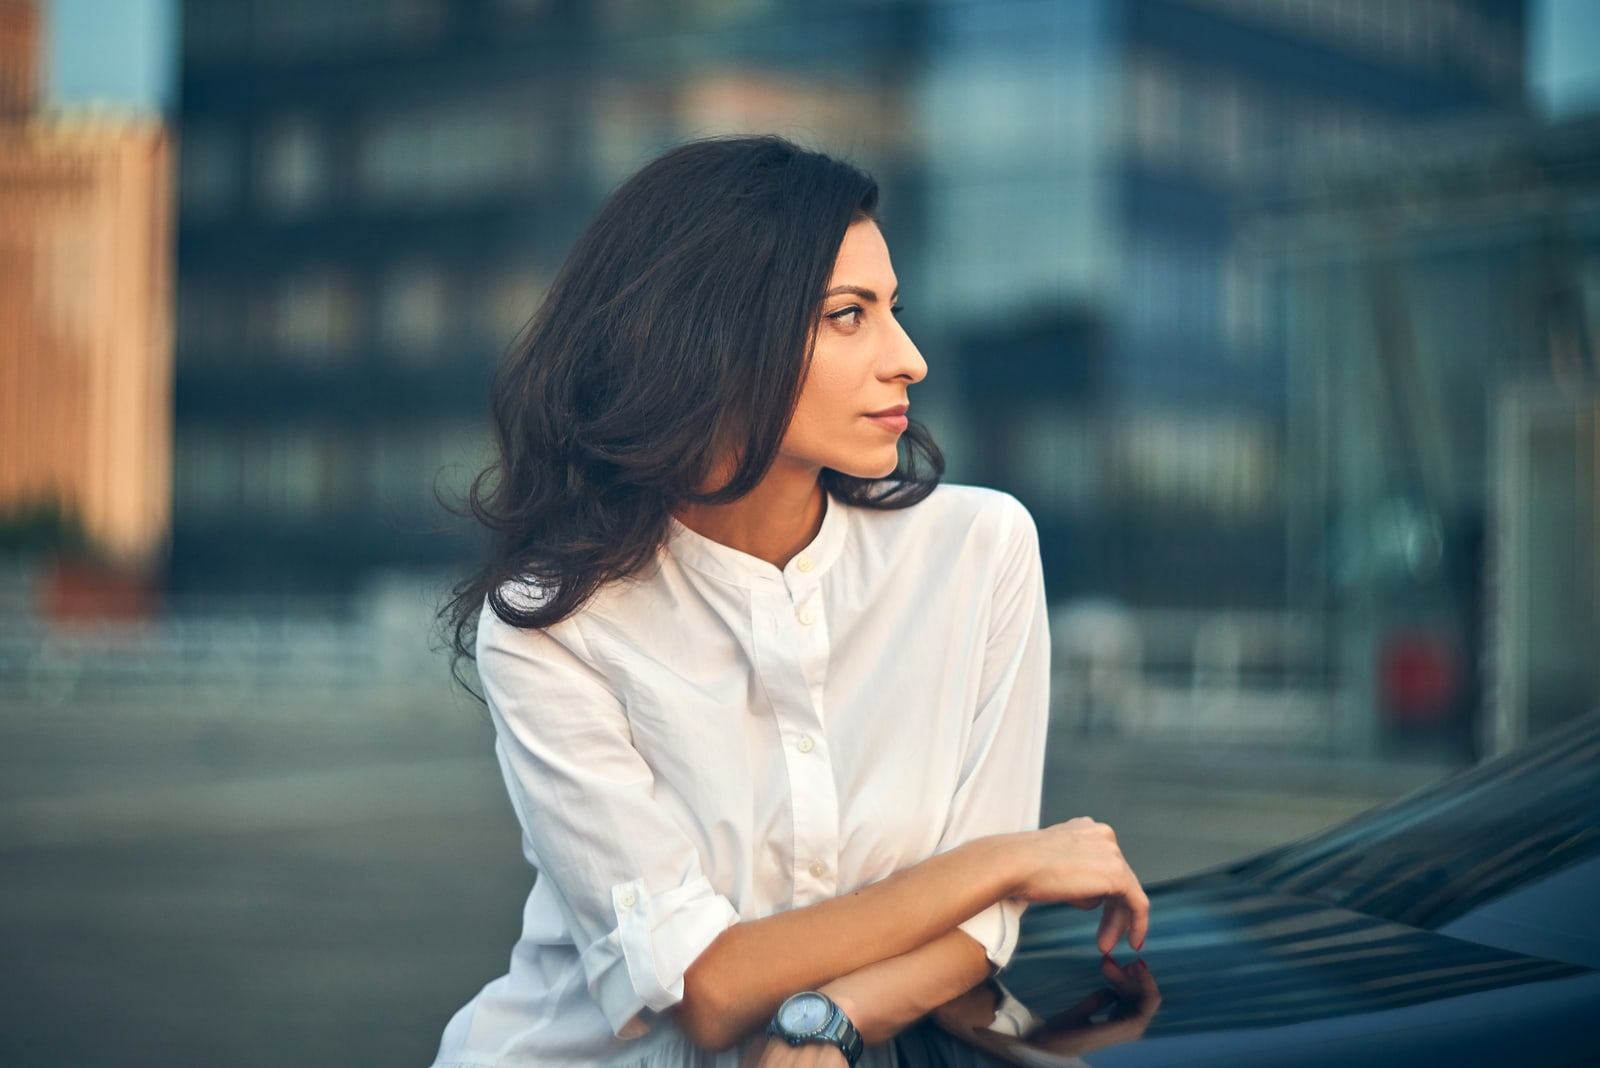 business woman standing outdoors leaning on the car